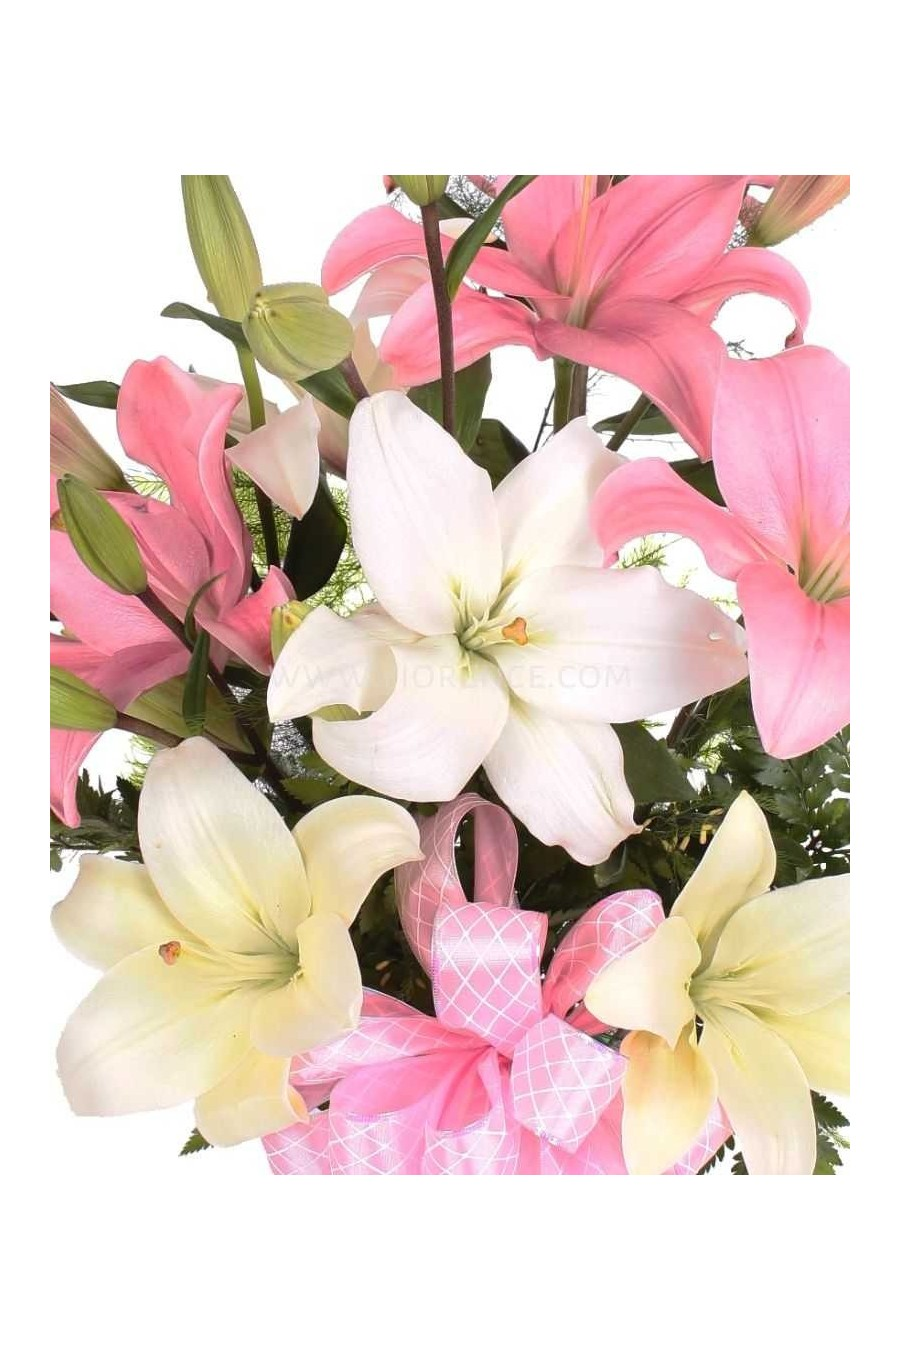 Flowers Pink and white lilies bouquet